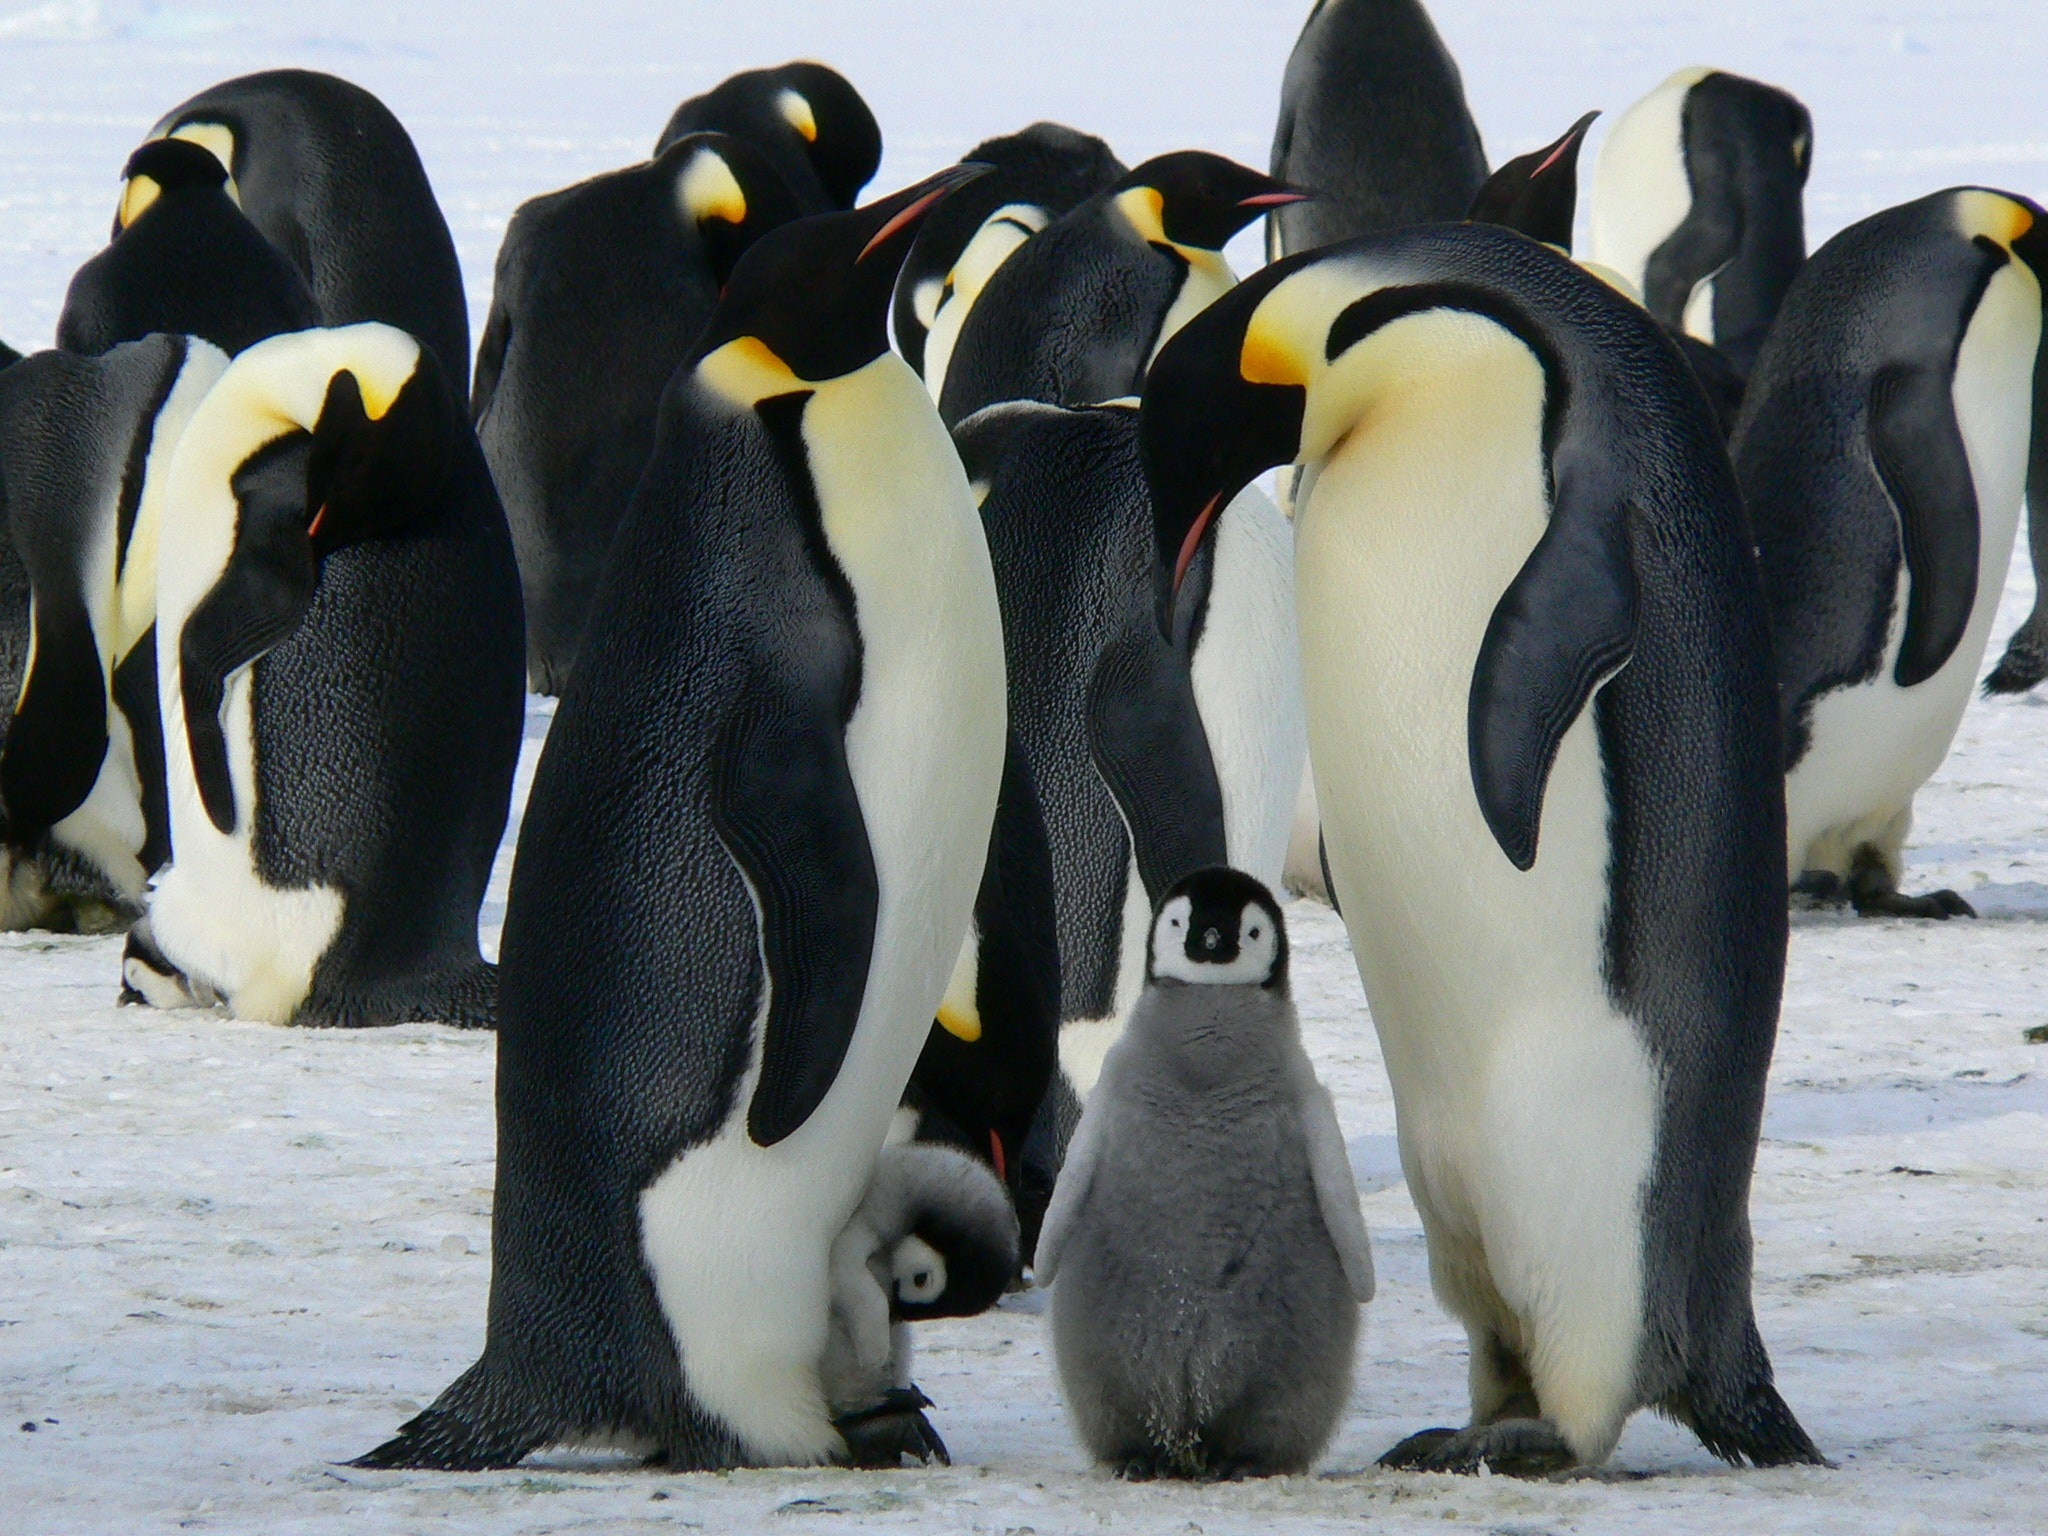 Penguins standing on the snow during daytime photo